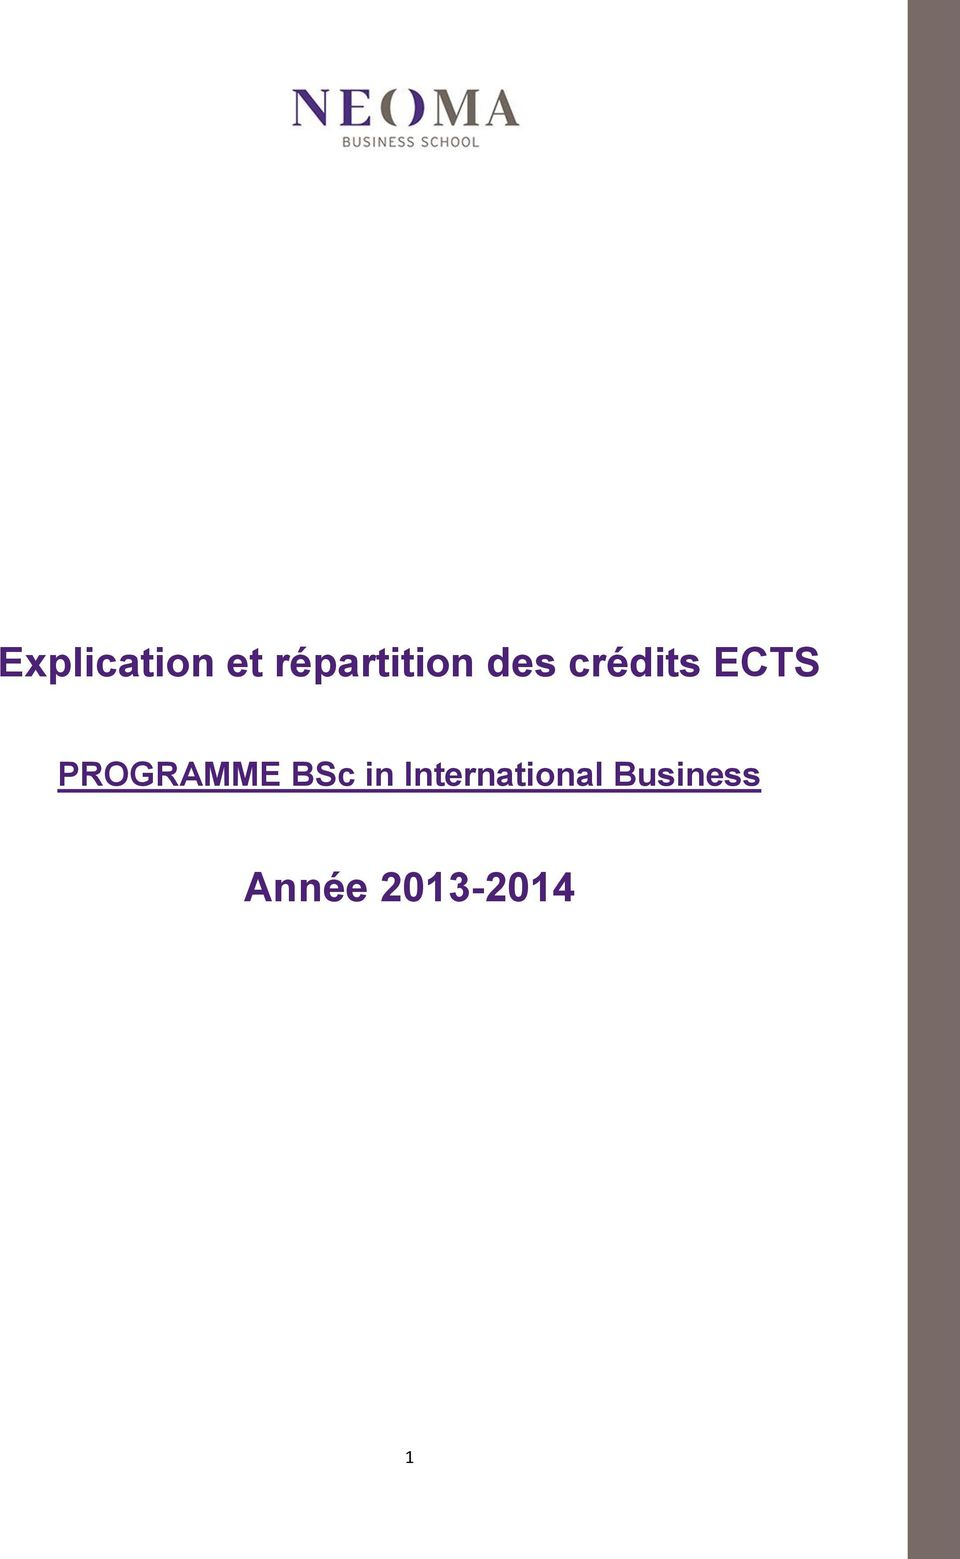 ECTS PROGRAMME BSc in